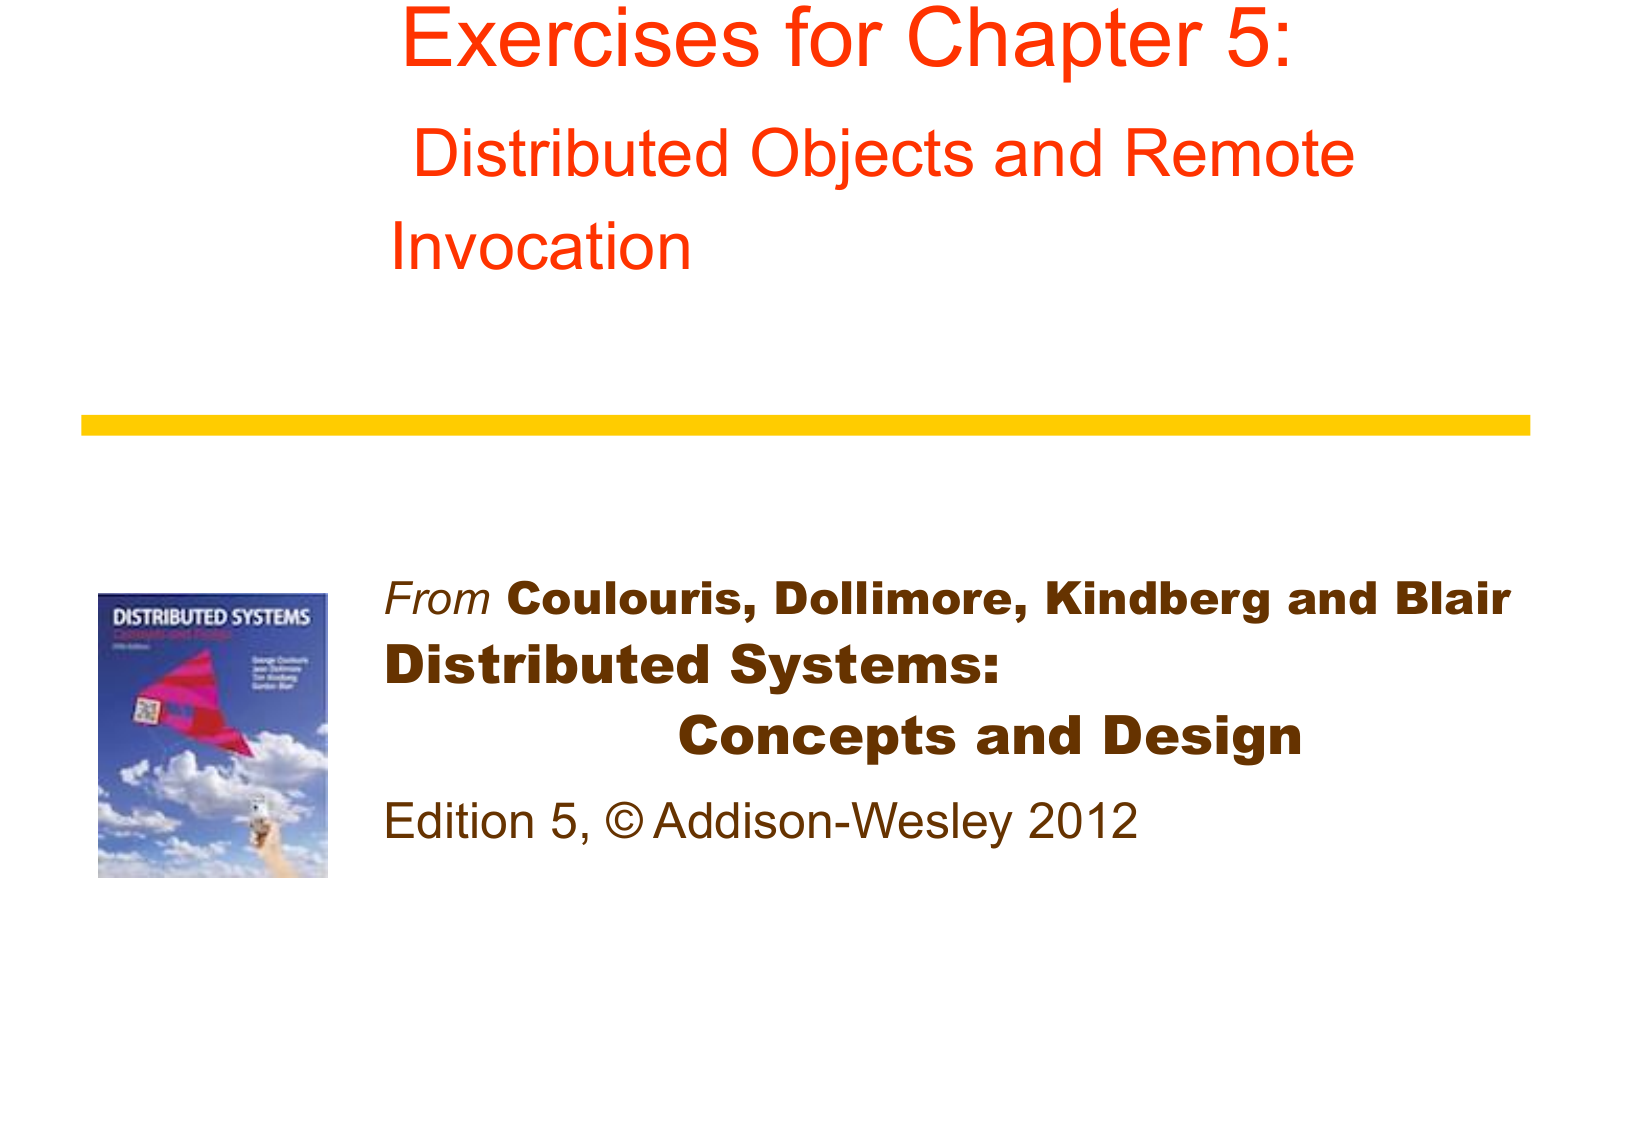 Exercises For Chapter 5 Distributed Systems Concepts